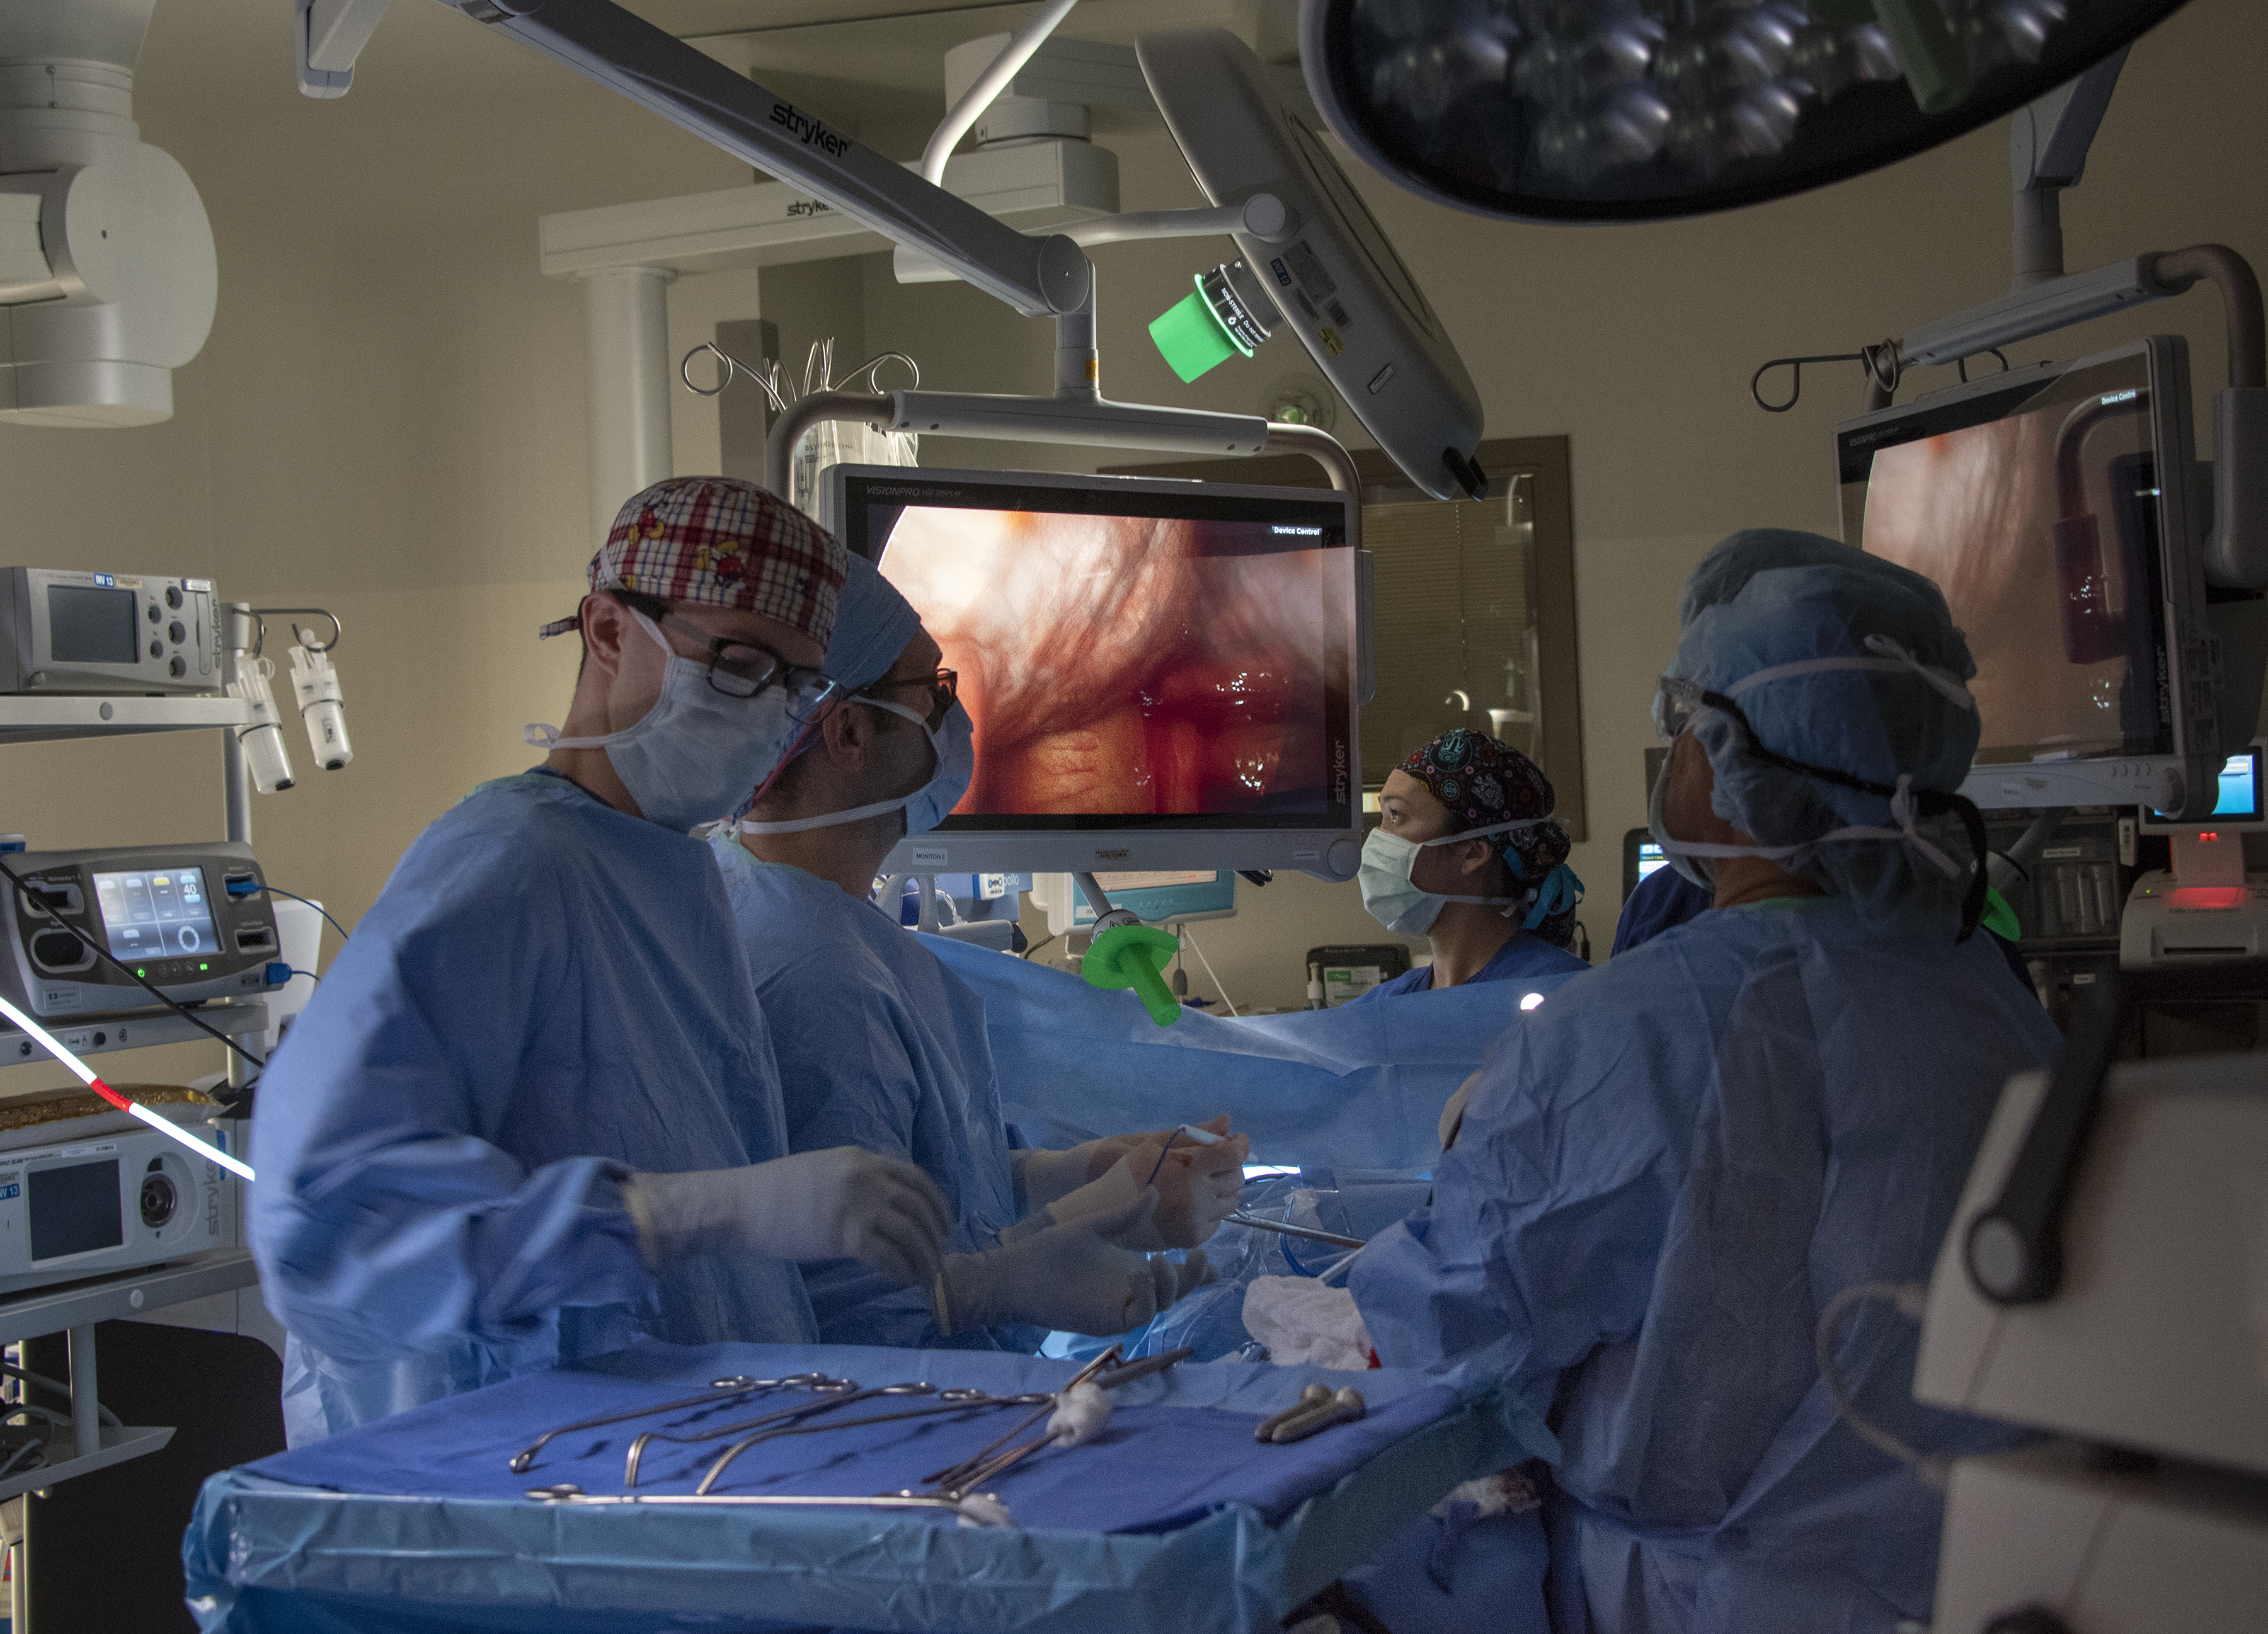 Medical staff at David Grant USAF Medical Center perform surgery to a lung cancer patient Feb. 26, 2019, at Travis Air Force Base, Calif. Members of the military may soon be able to file claims for cases of negligence or malpractice in military health facilities. (Heide Couch/Air Force)